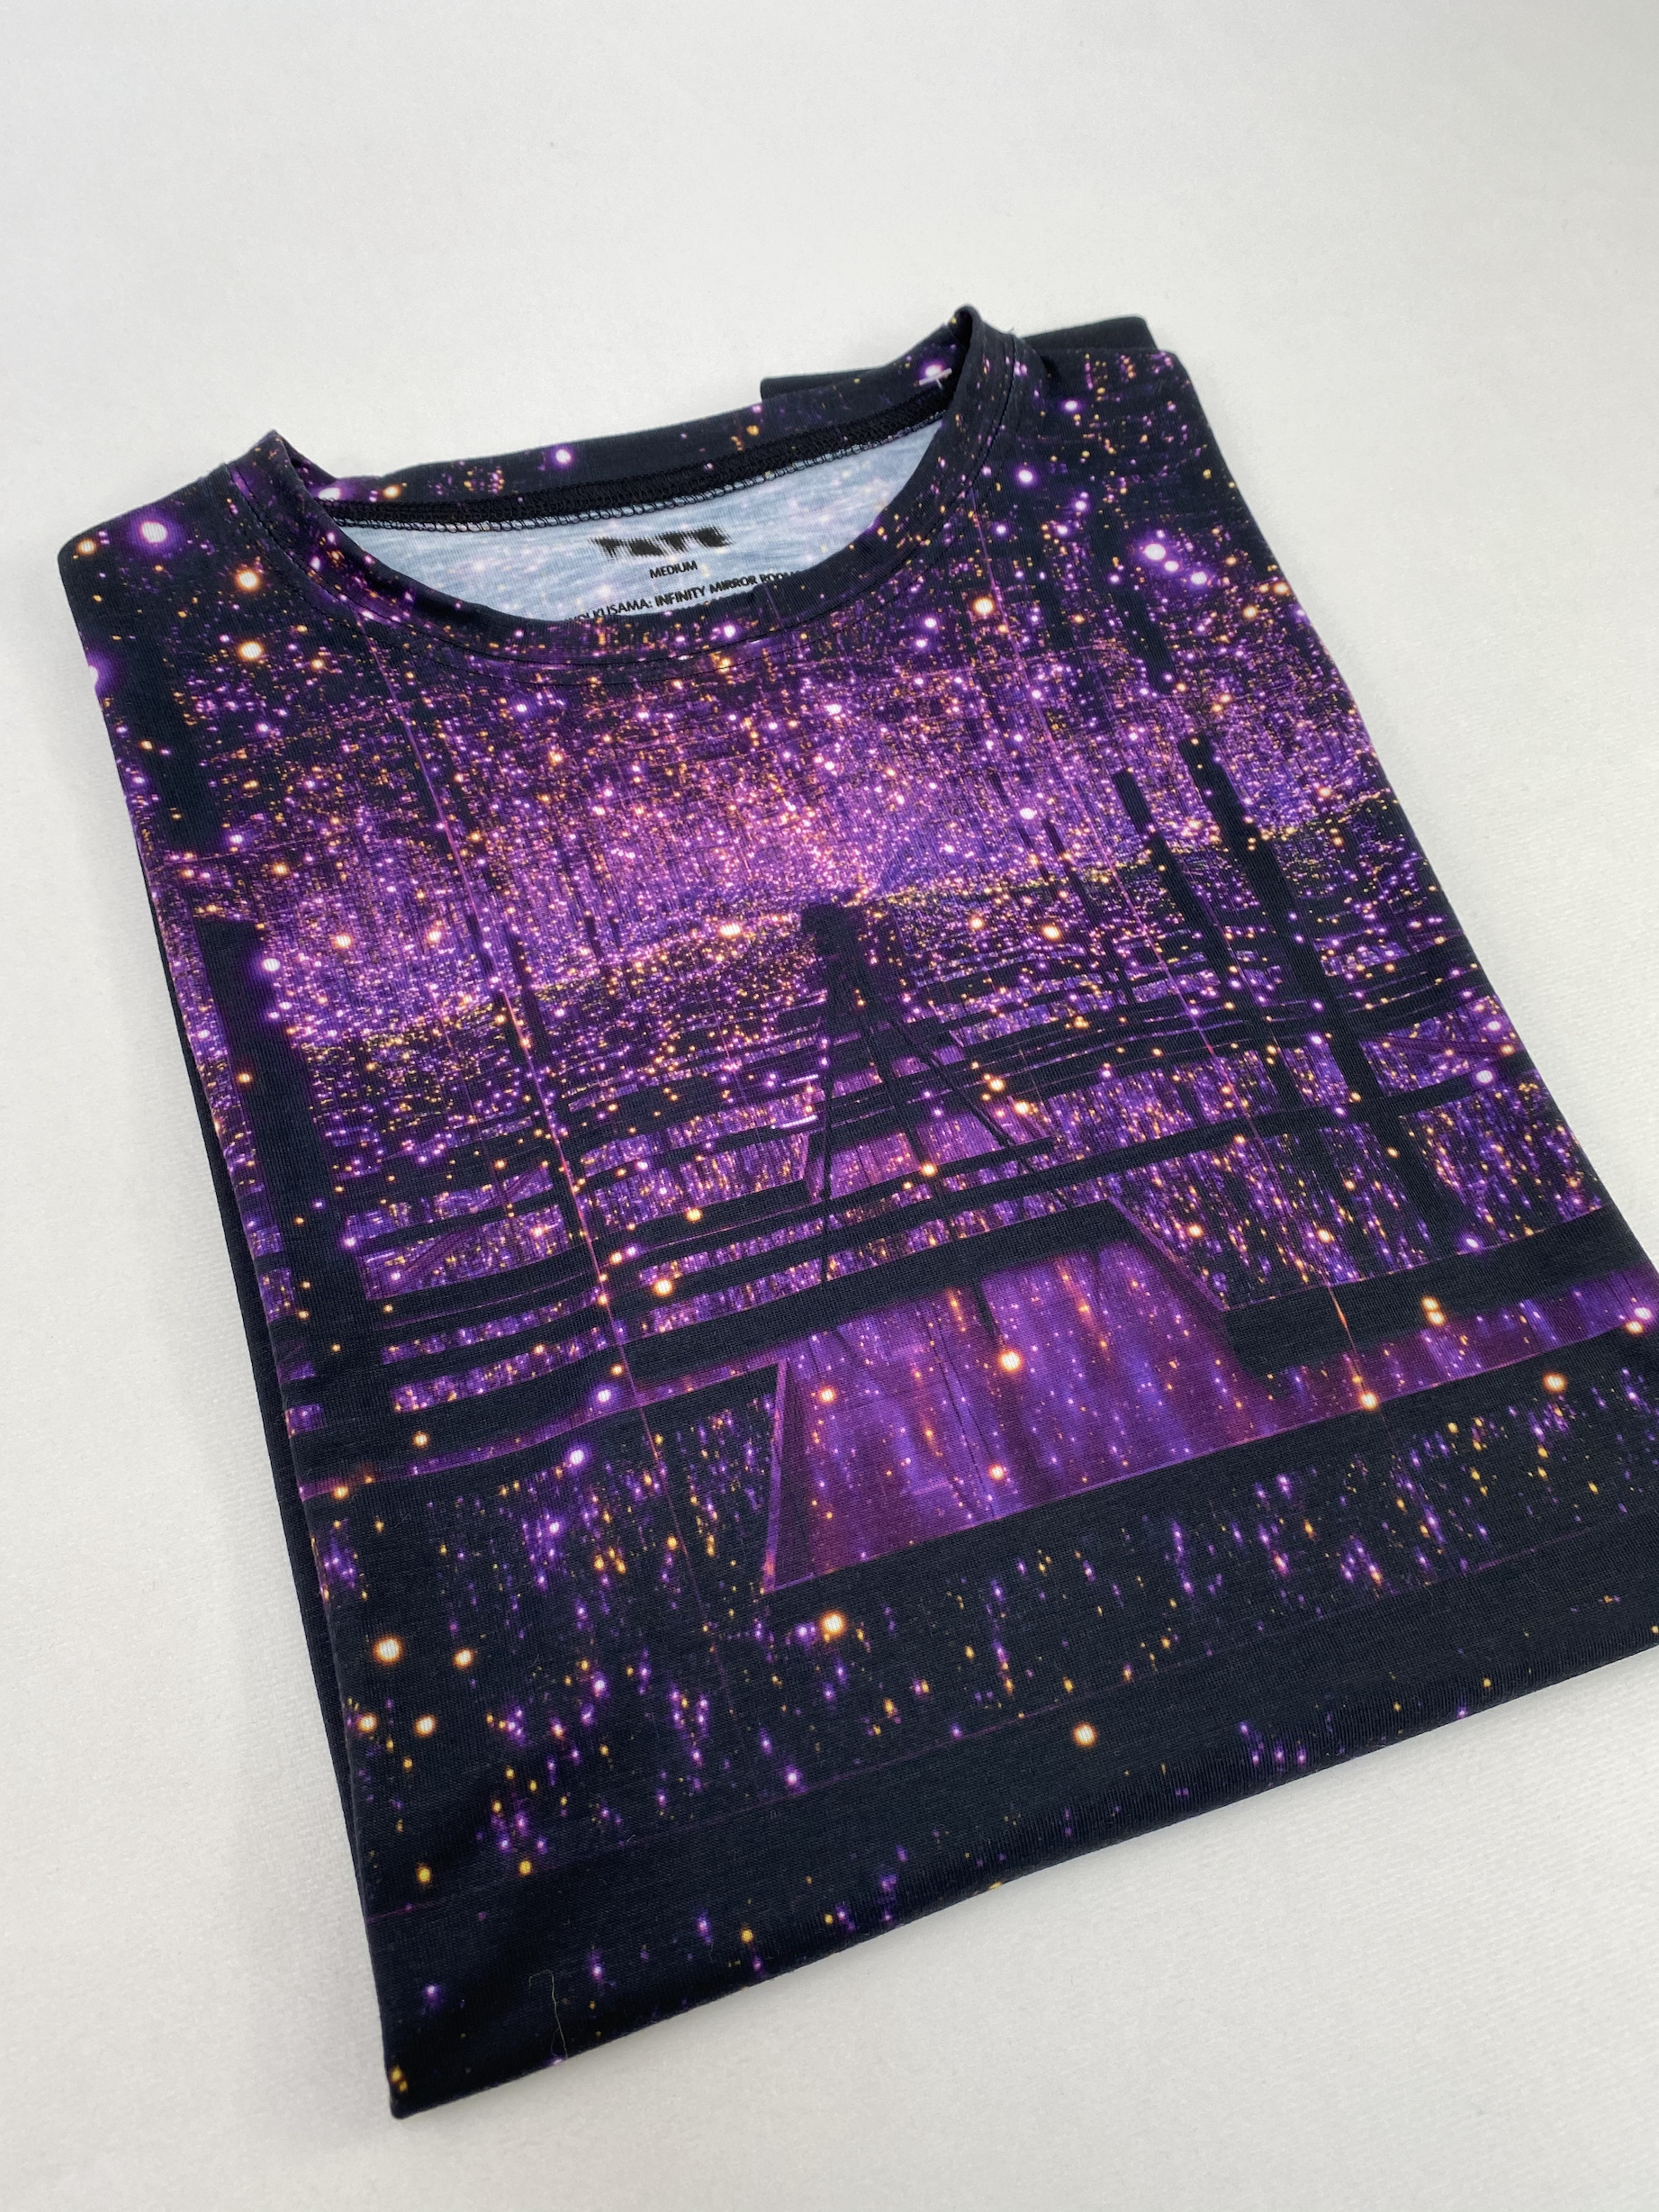 Speacial make all over printed t-shirt made by Paul Bristow in the UK